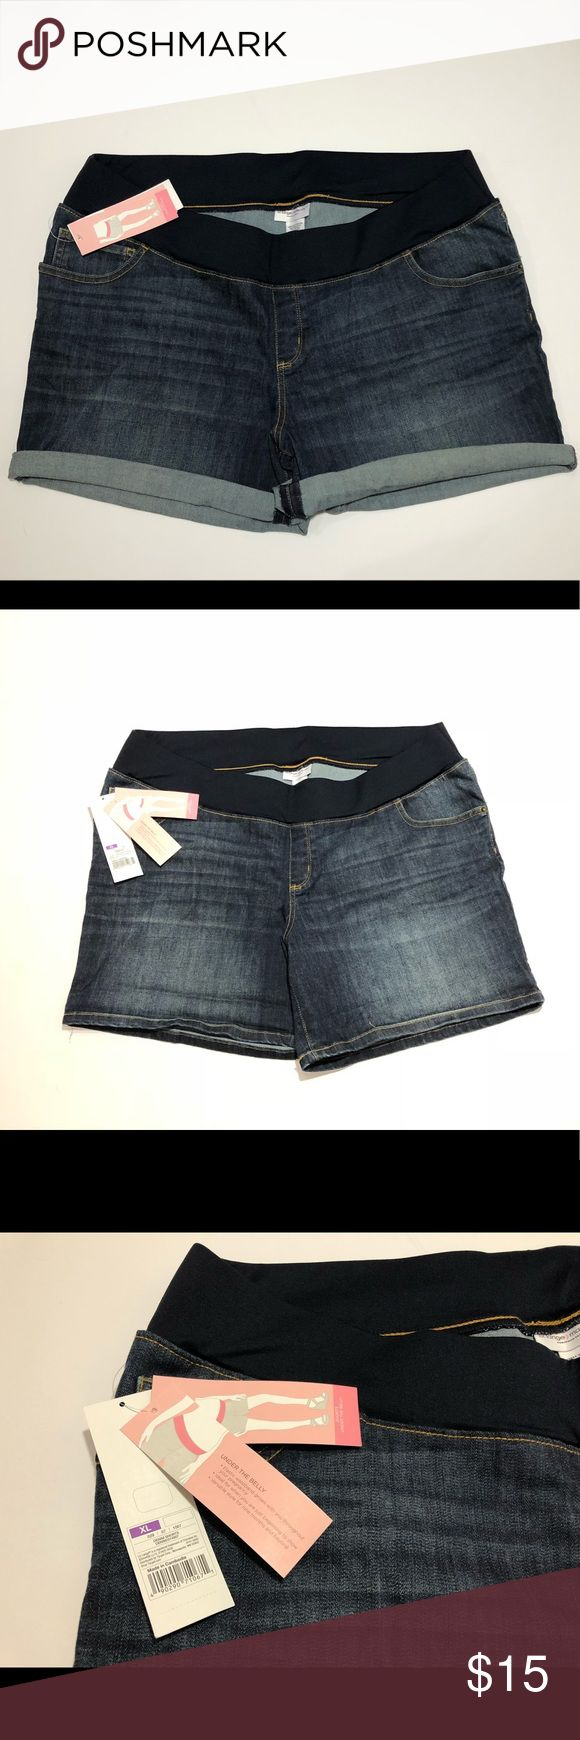 Liz Lange Women Sz XL Denim Maternity Shorts New With Tags See Picture For Details. C97 Liz Lange for Target Shorts Jean Shorts